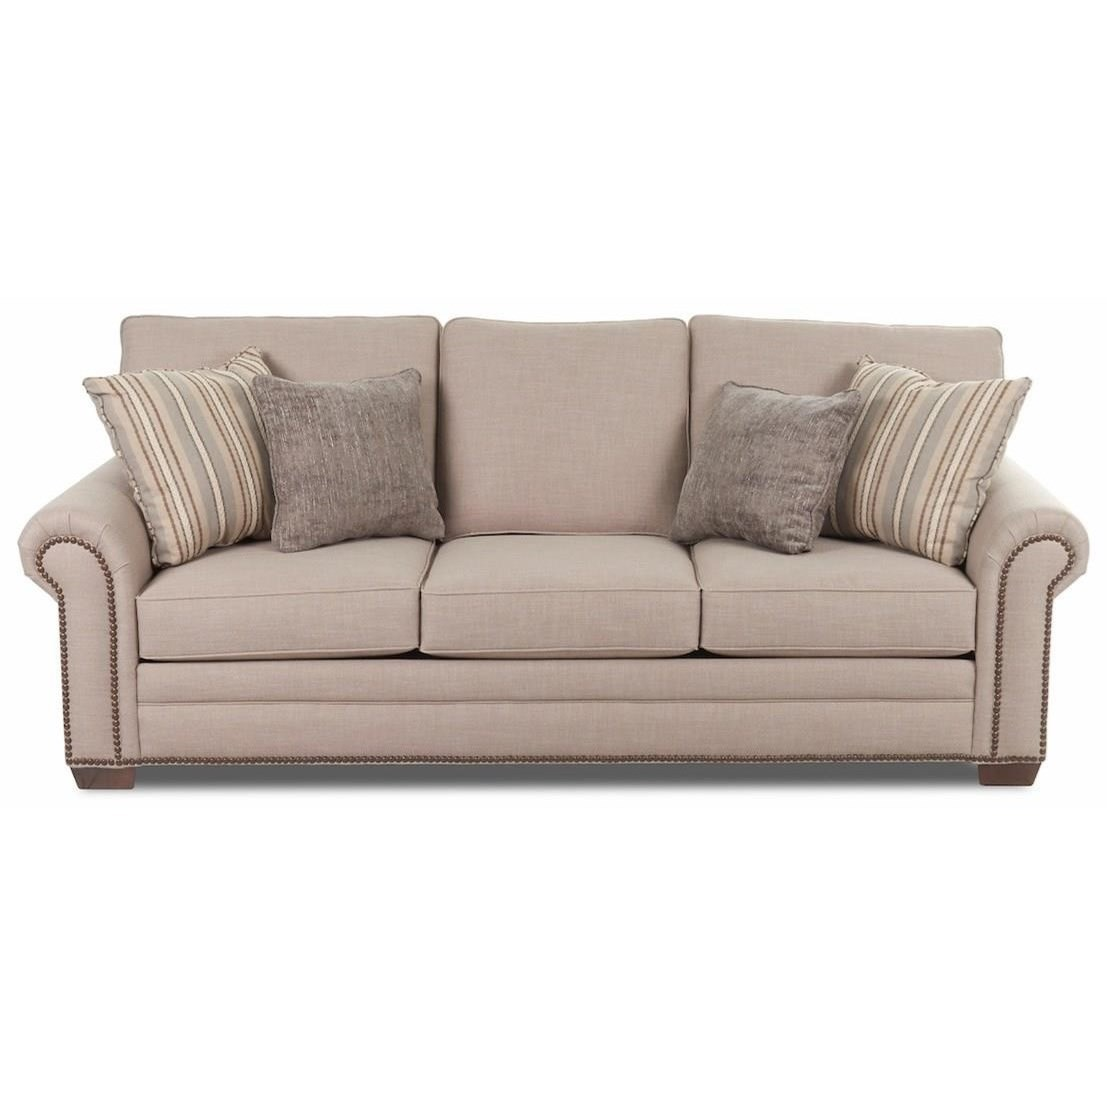 Ronaldo Sofa by Klaussner at Northeast Factory Direct